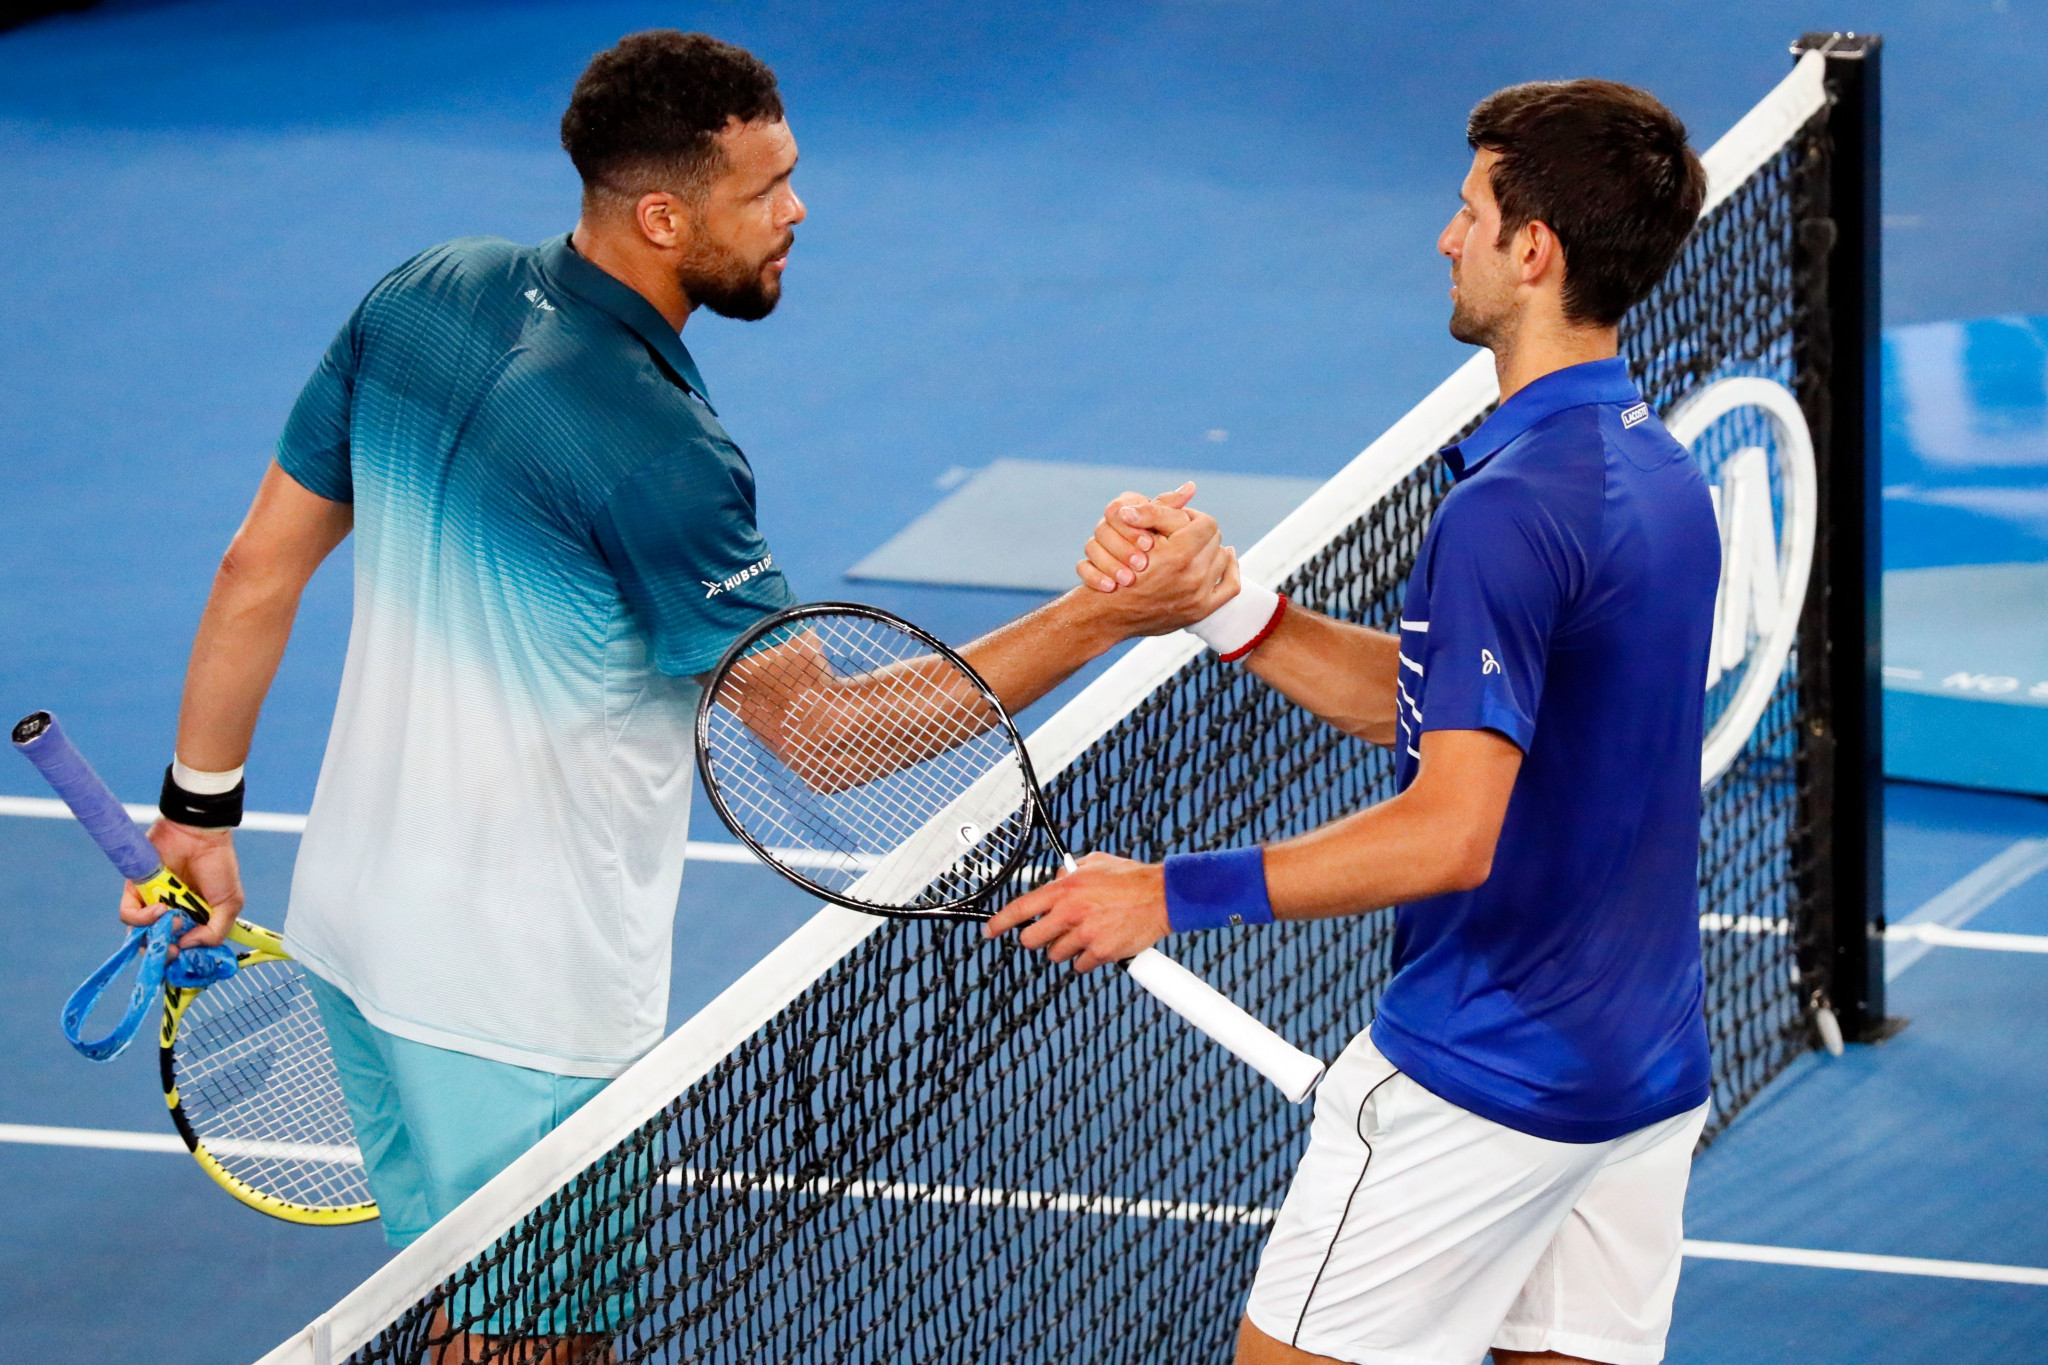 The Serbian beat Jo-Wilfried Tsonga of France in a repeat of the 2008 Australian Open final ©Getty Images